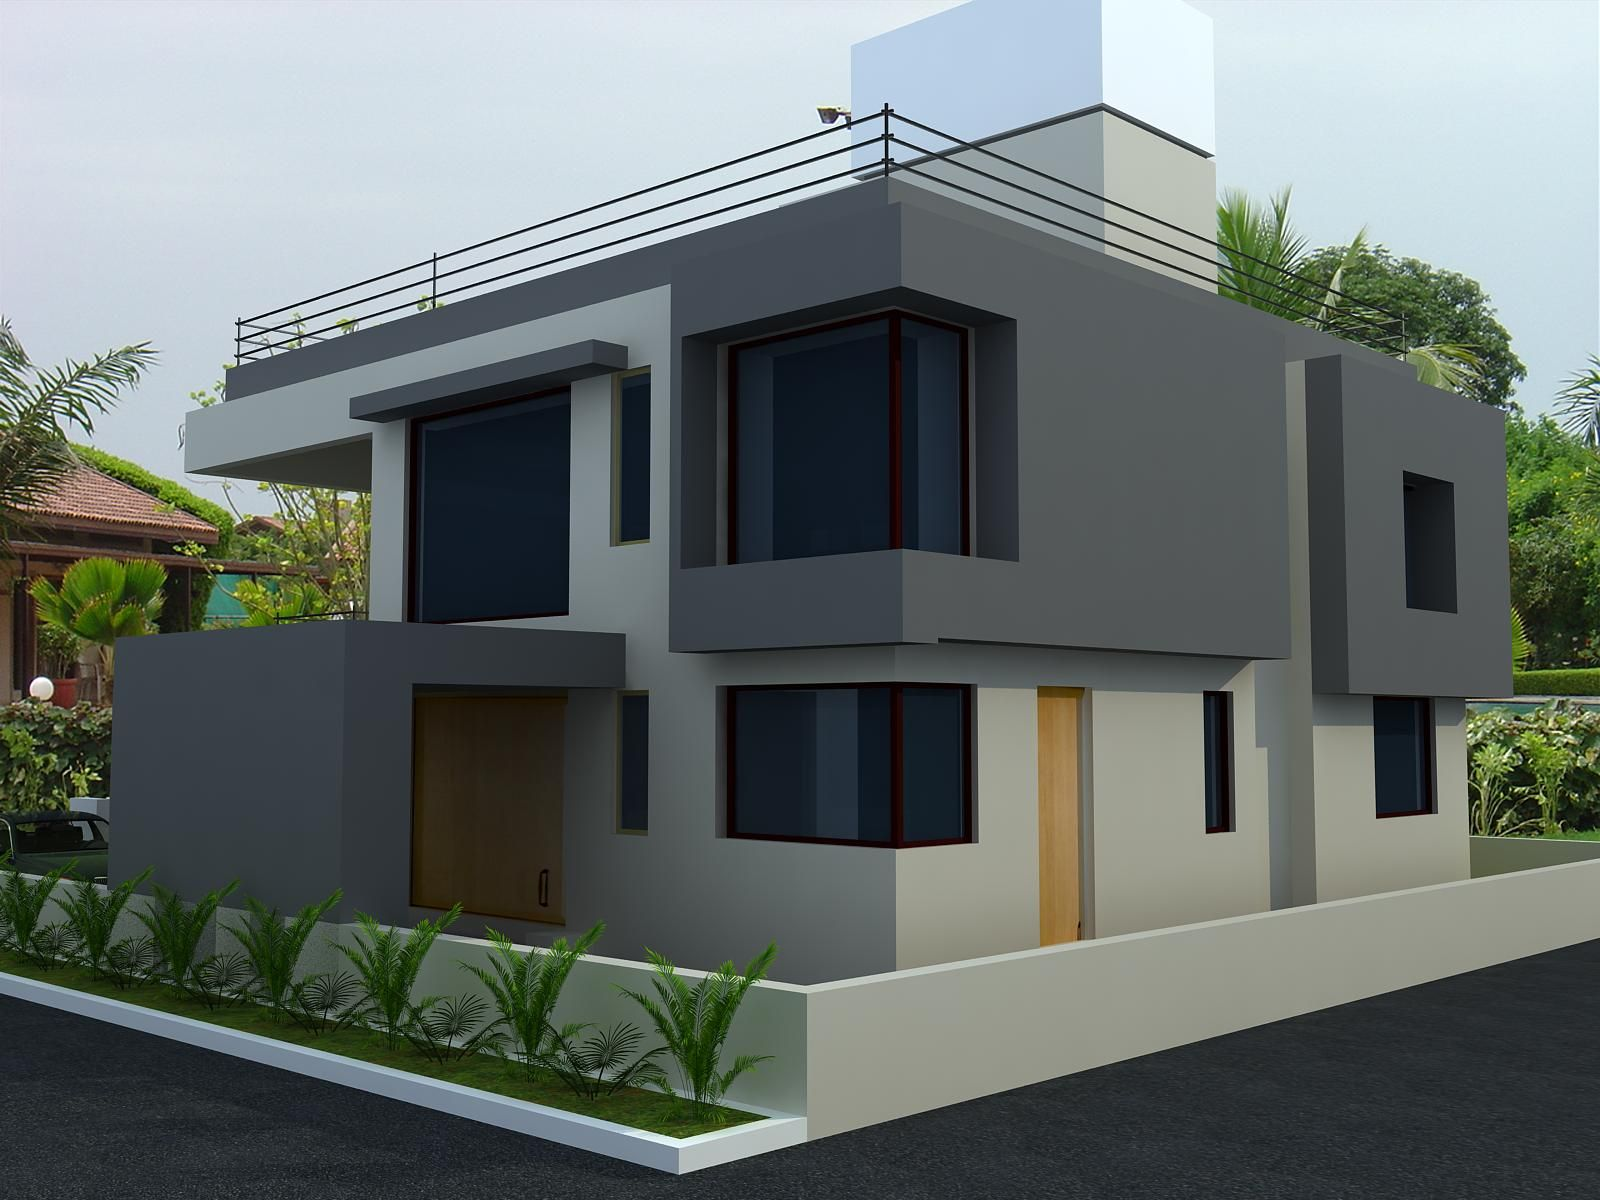 Architectural 3d model architectural 3d rendering for Home 3d model